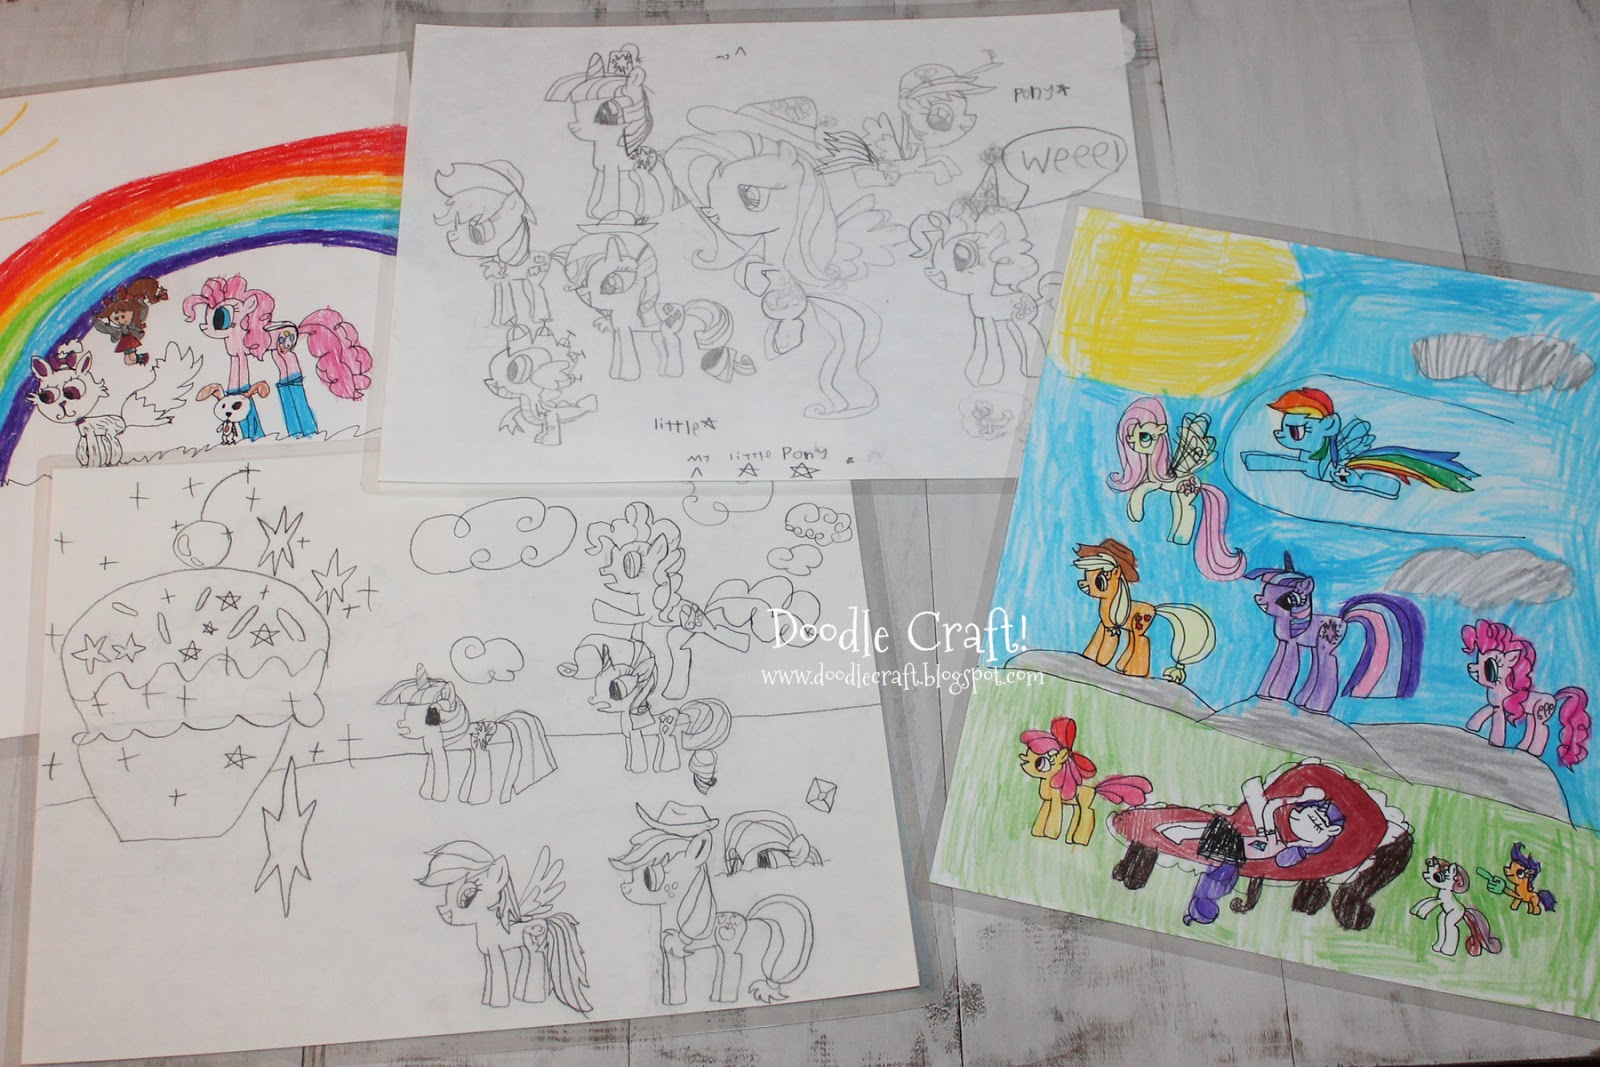 Drawn paper mlp Little Doodlecraft: Design My Little